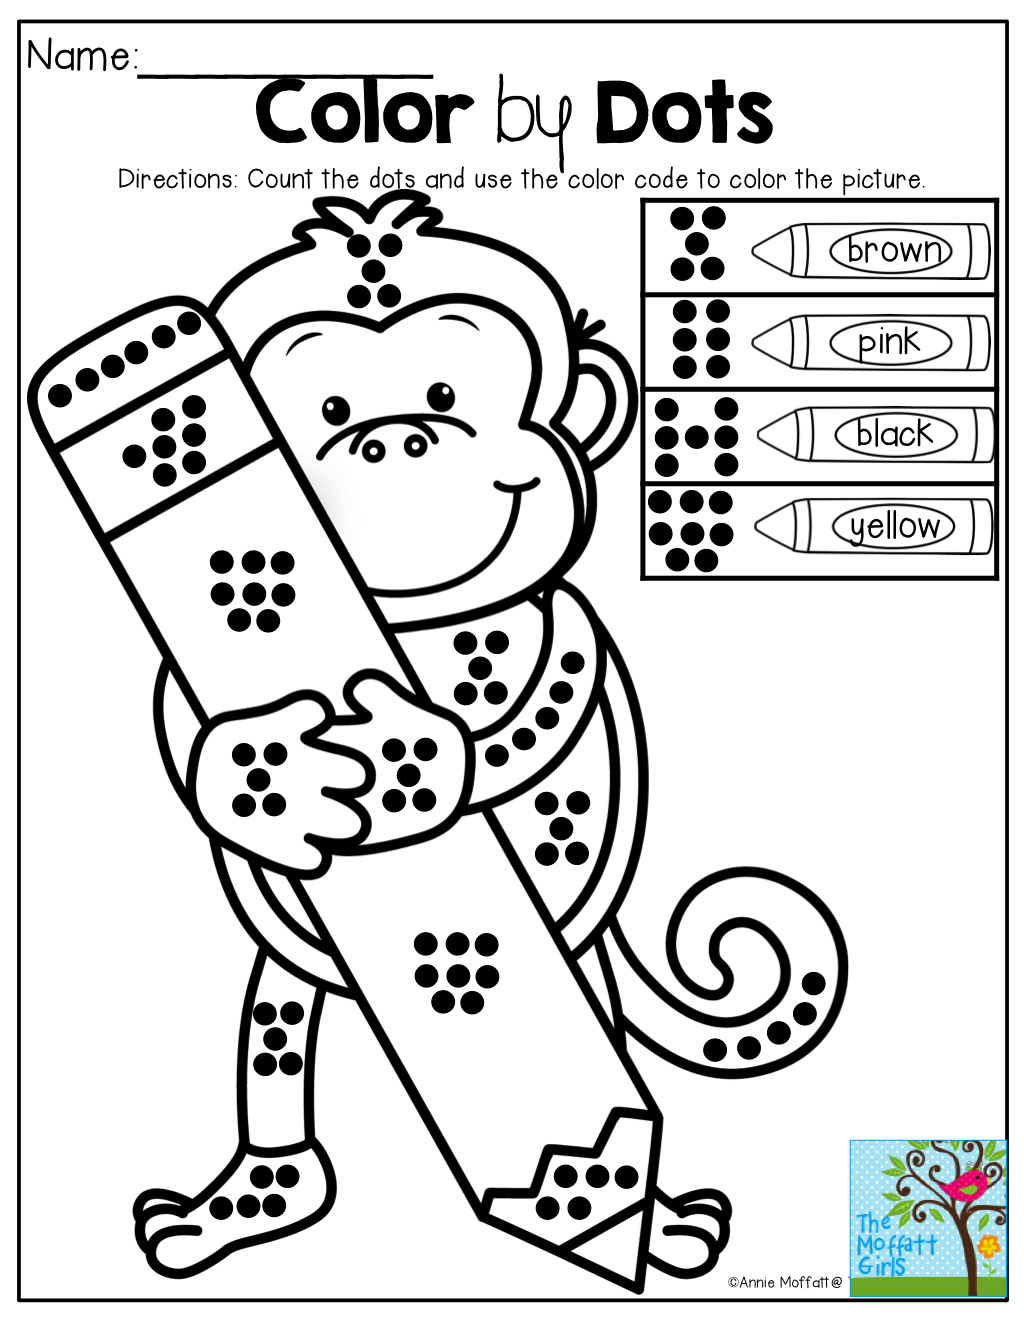 Color By Dots! Great For Counting, Number Sense And Color Word